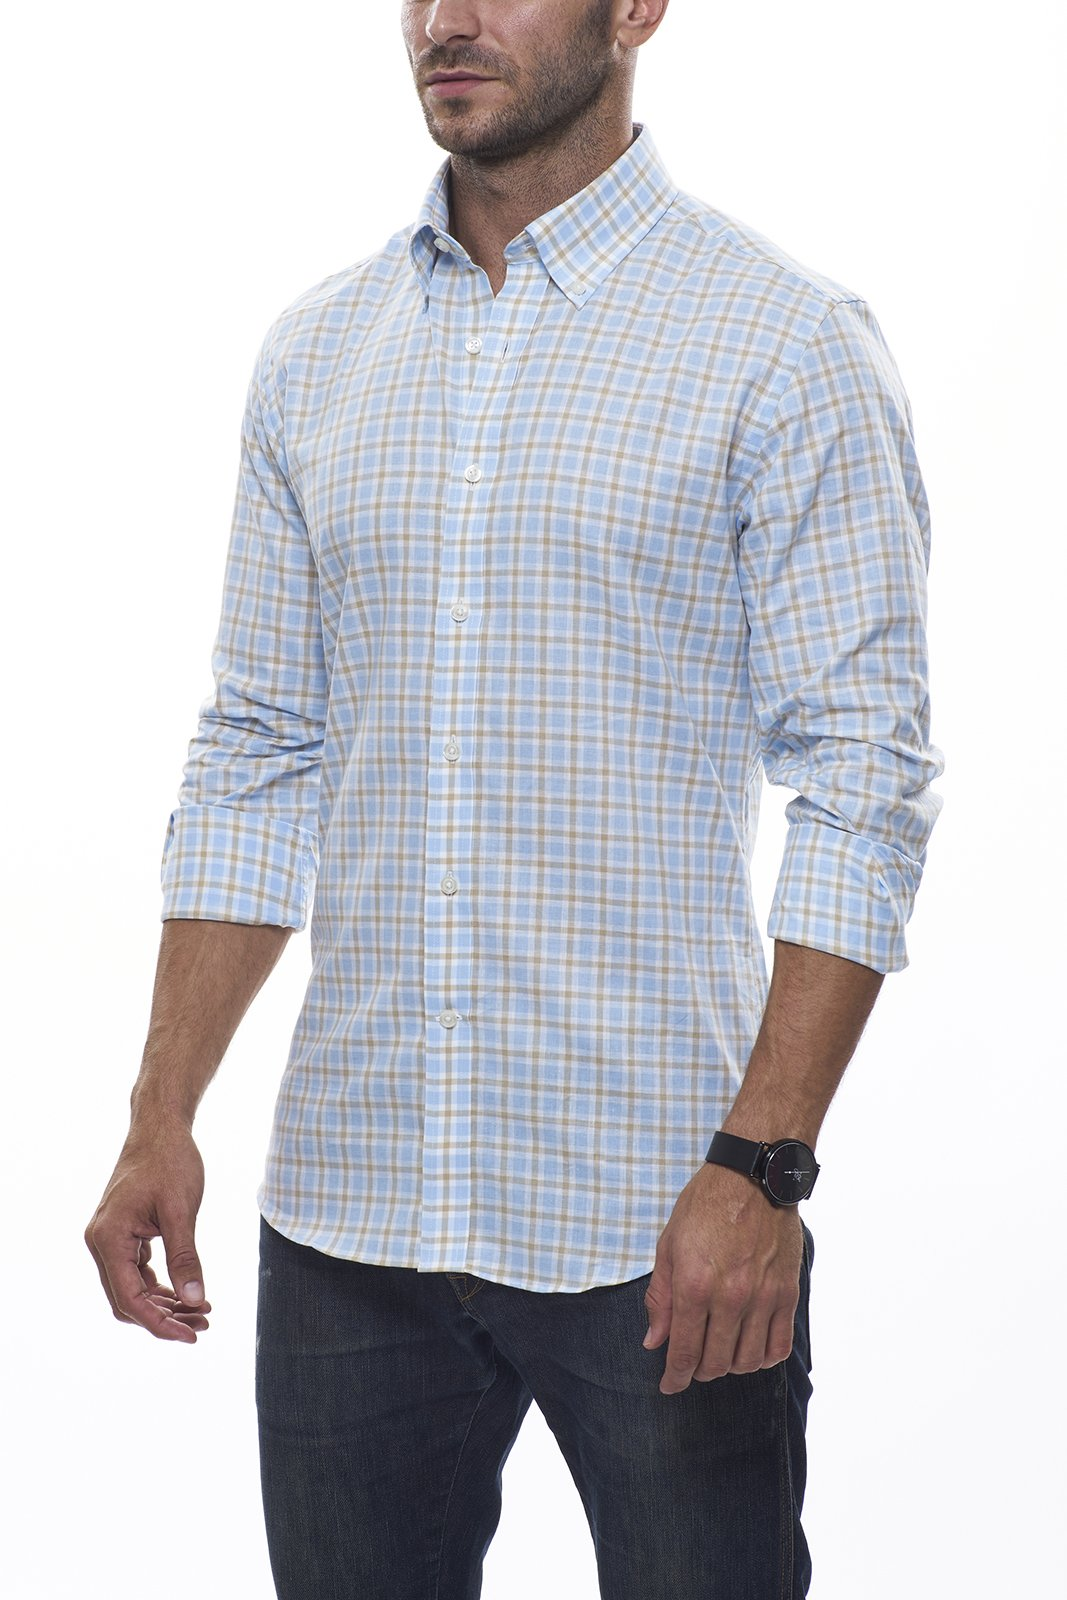 Shoreline Plaid Linen: Semi-Spread Collar, Barrel Cuff